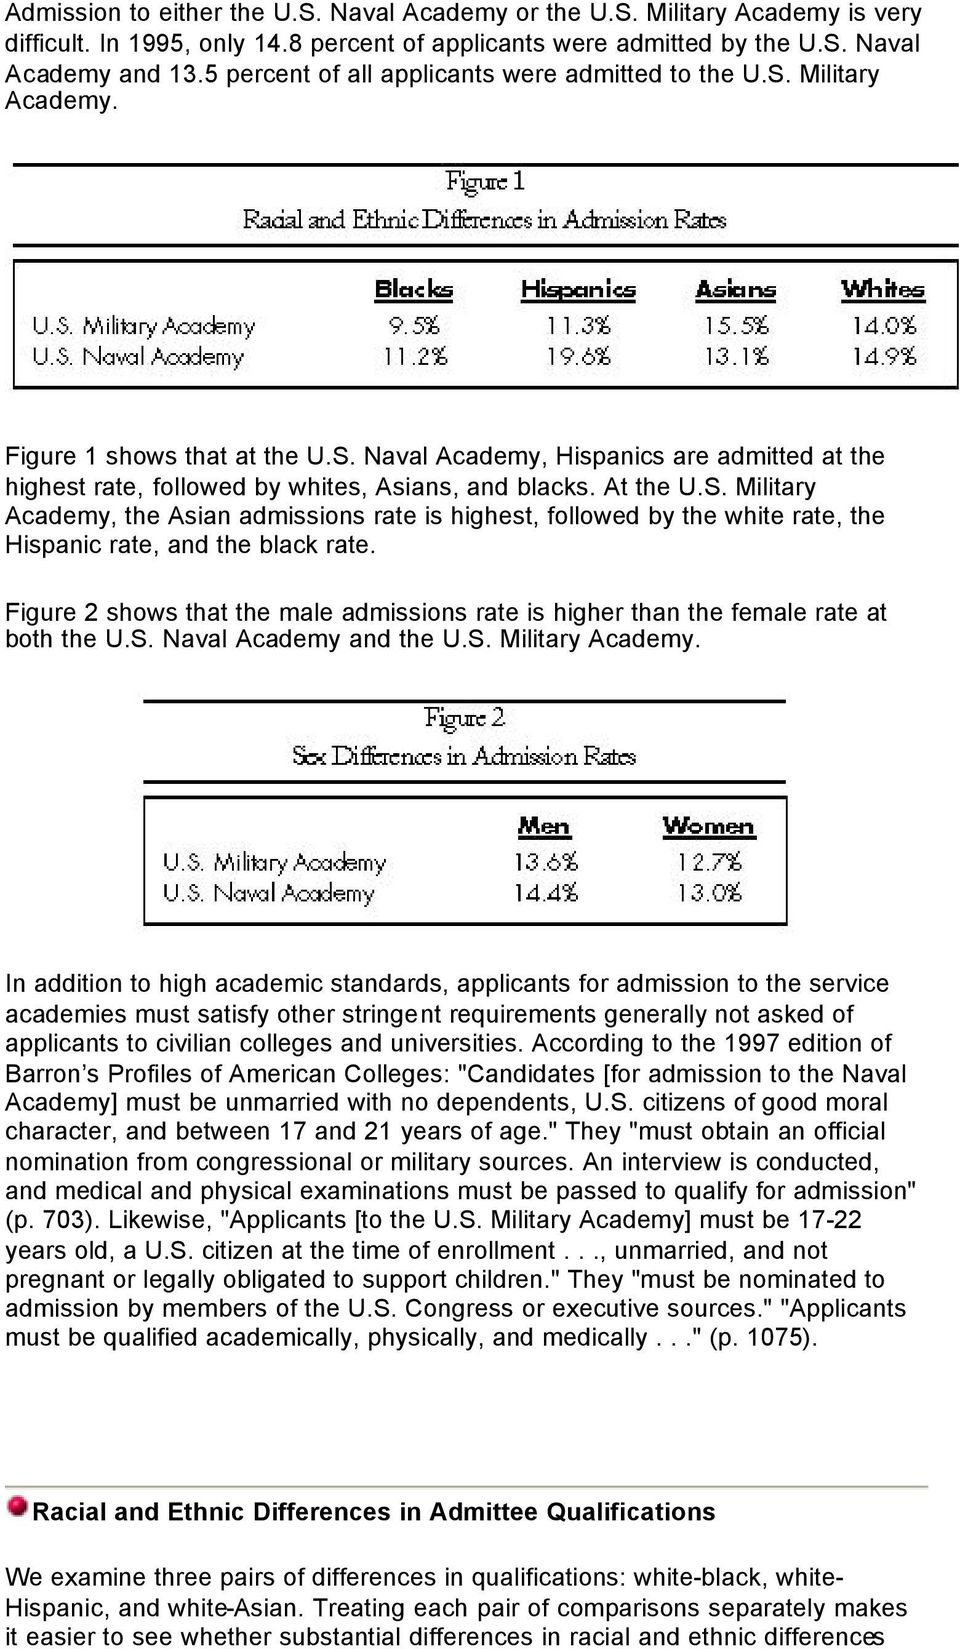 At the U.S. Military Academy, the Asian admissions rate is highest, followed by the white rate, the Hispanic rate, and the black rate.